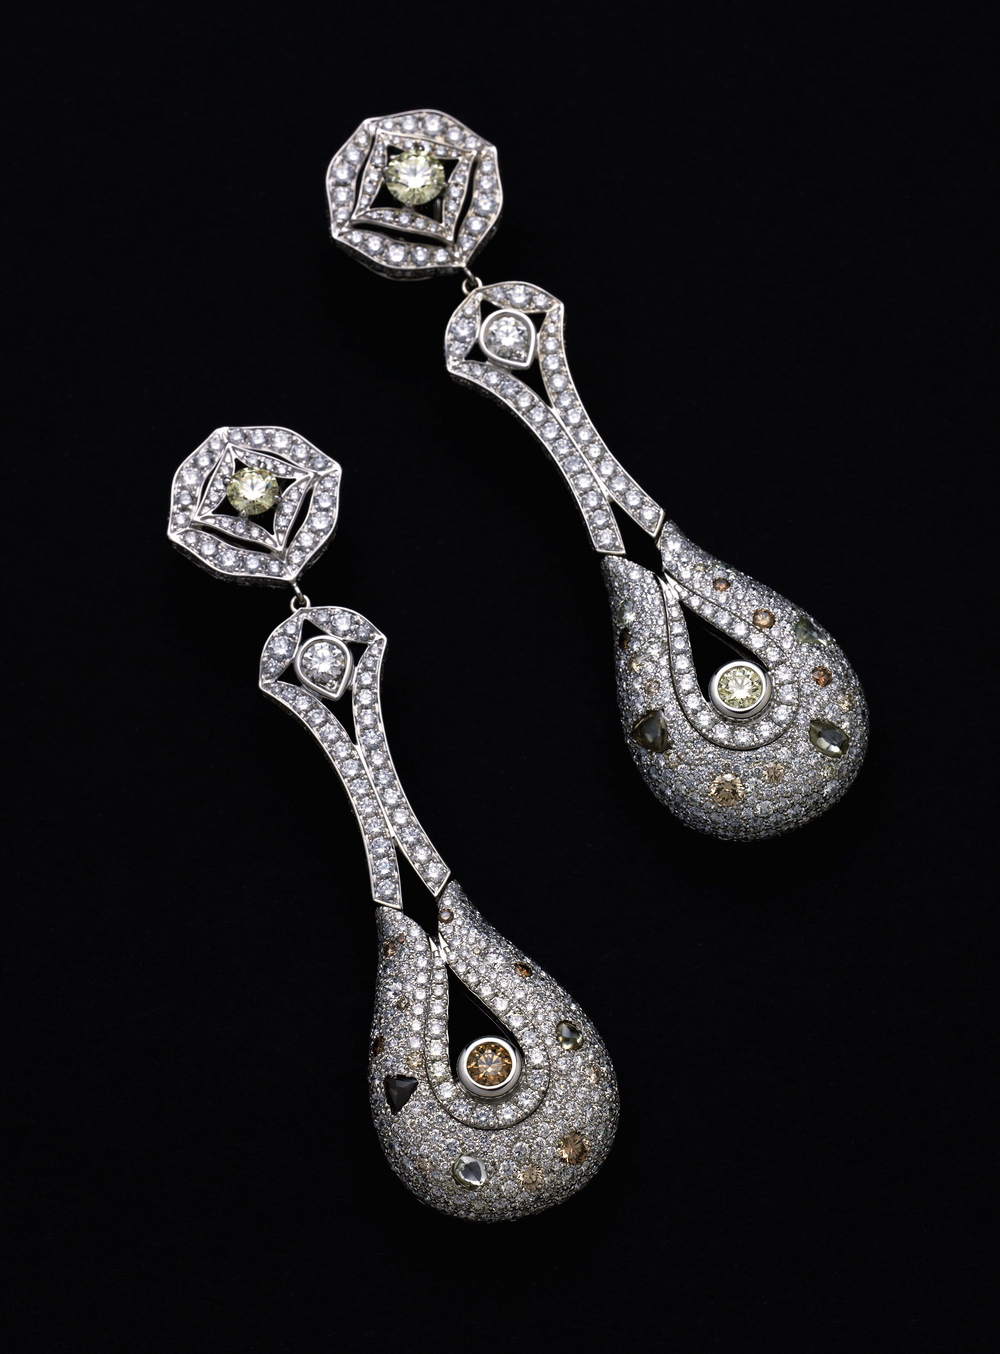 Rio Tinto Bunder Diamonds_Reena Ahluwalia Earrings.jpg